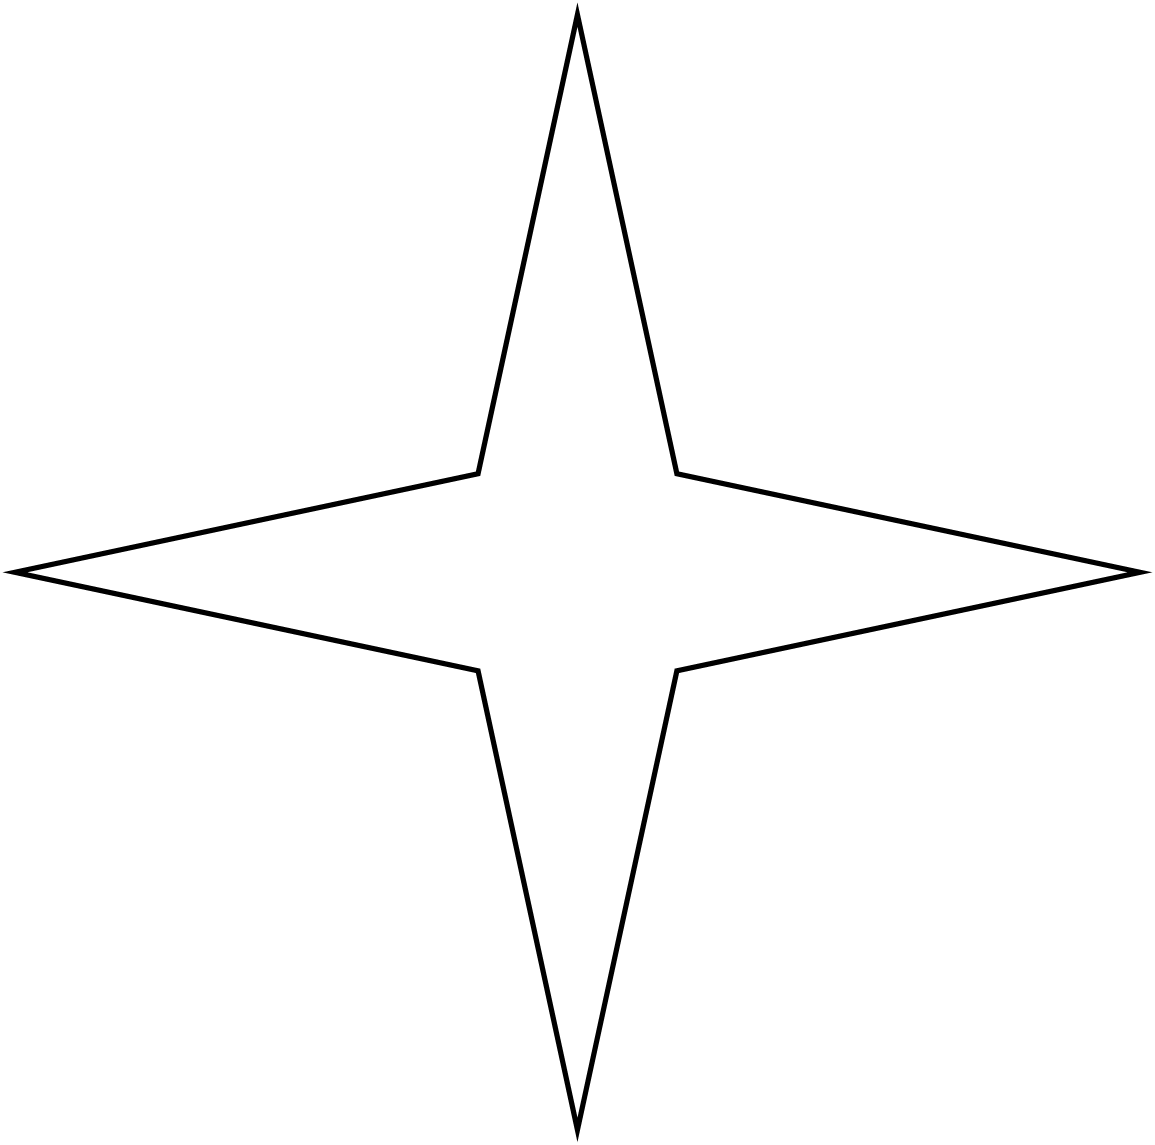 File point star wikimedia. 4 stars png image black and white download